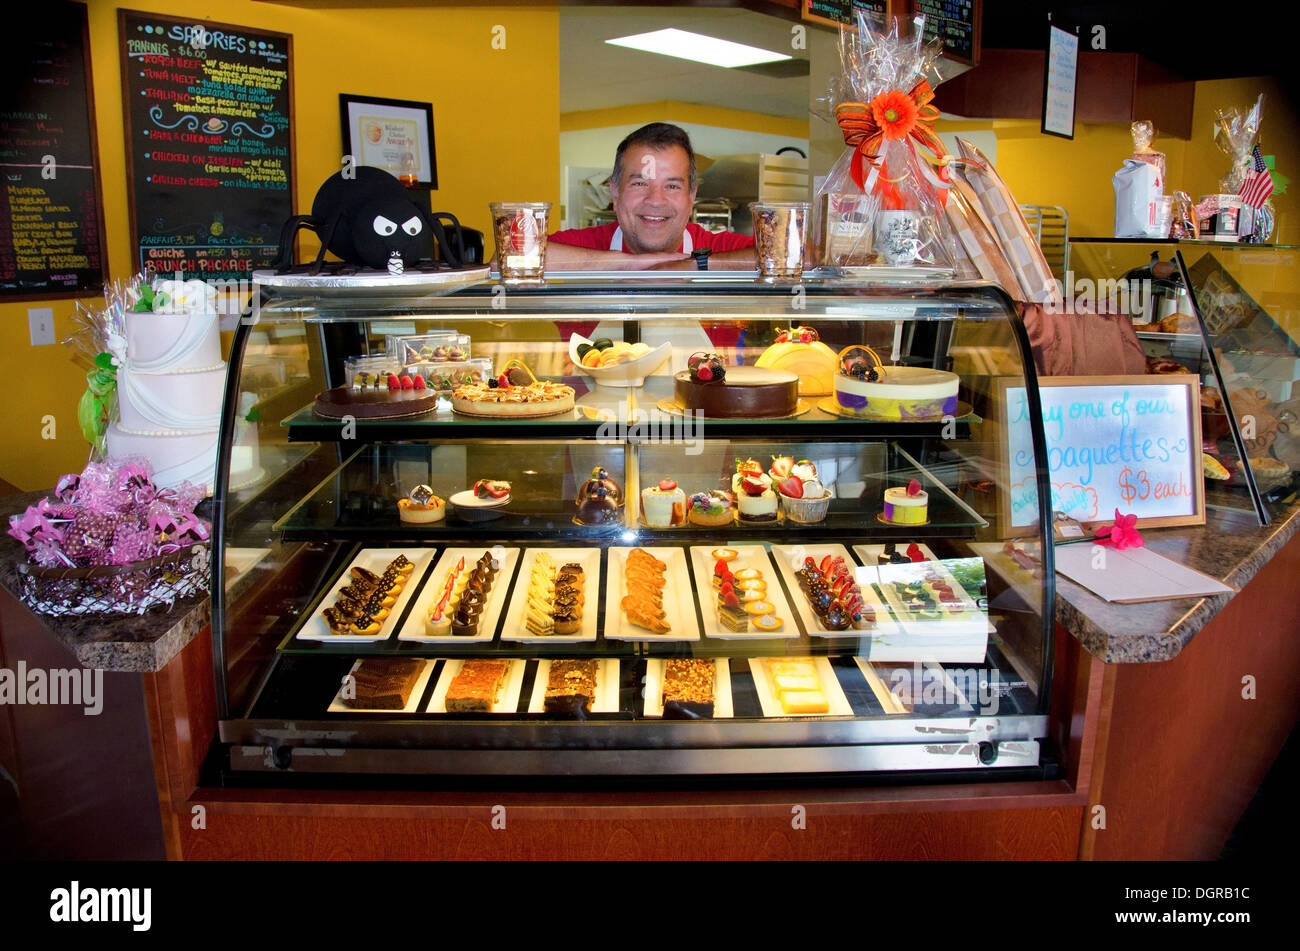 The Cocoa Bean is a popular bakery in Geneva, Illinois, a town along the Lincoln Highway. - Stock Image